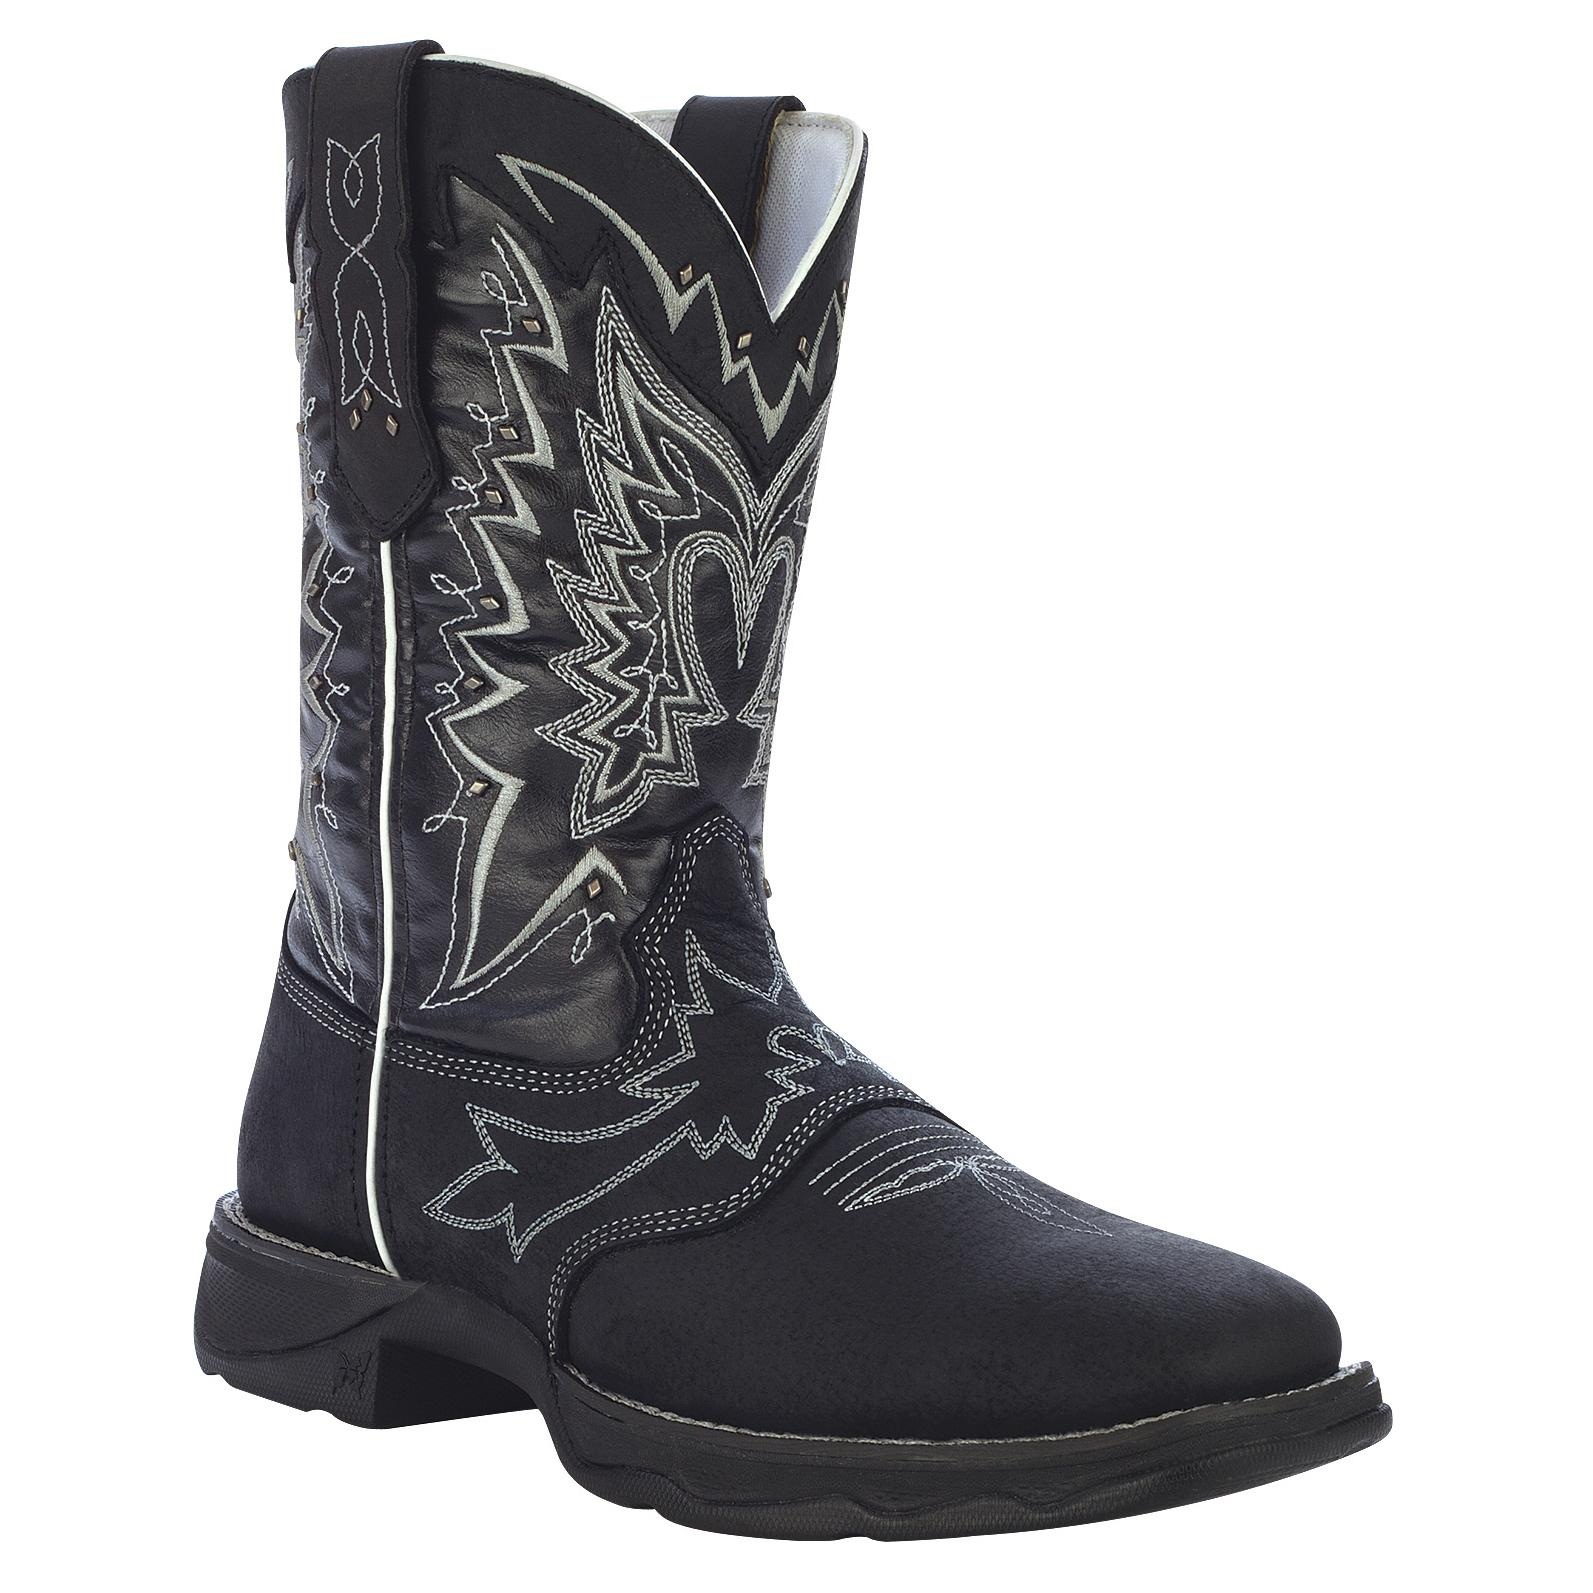 Lady Rebel by Durango: Women's 10